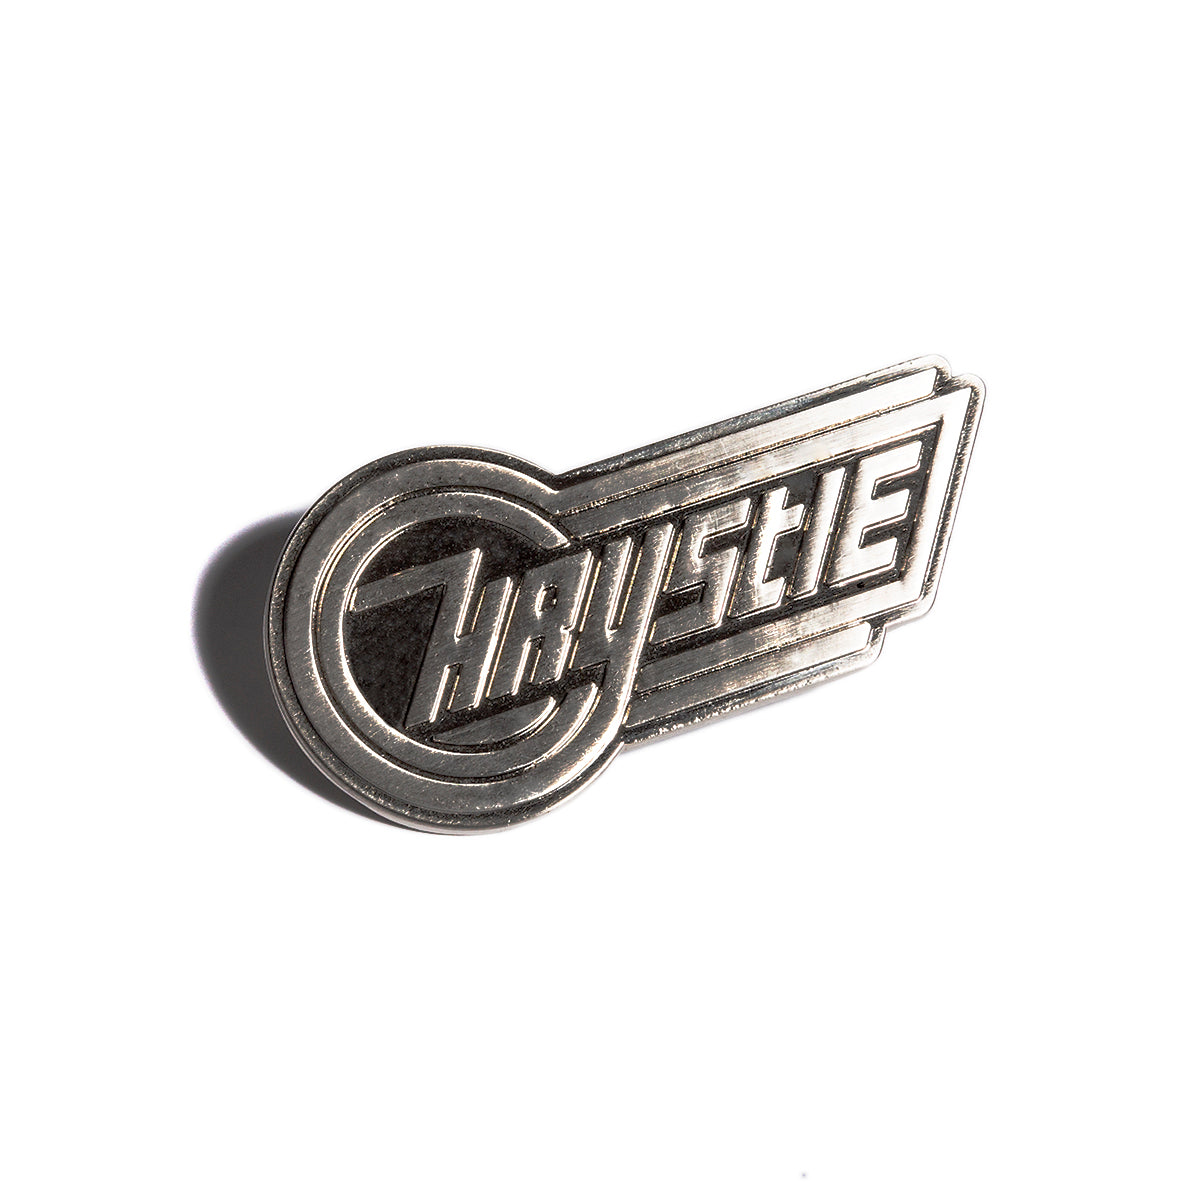 Load image into Gallery viewer, Chrystie Dynamo Logo Pin